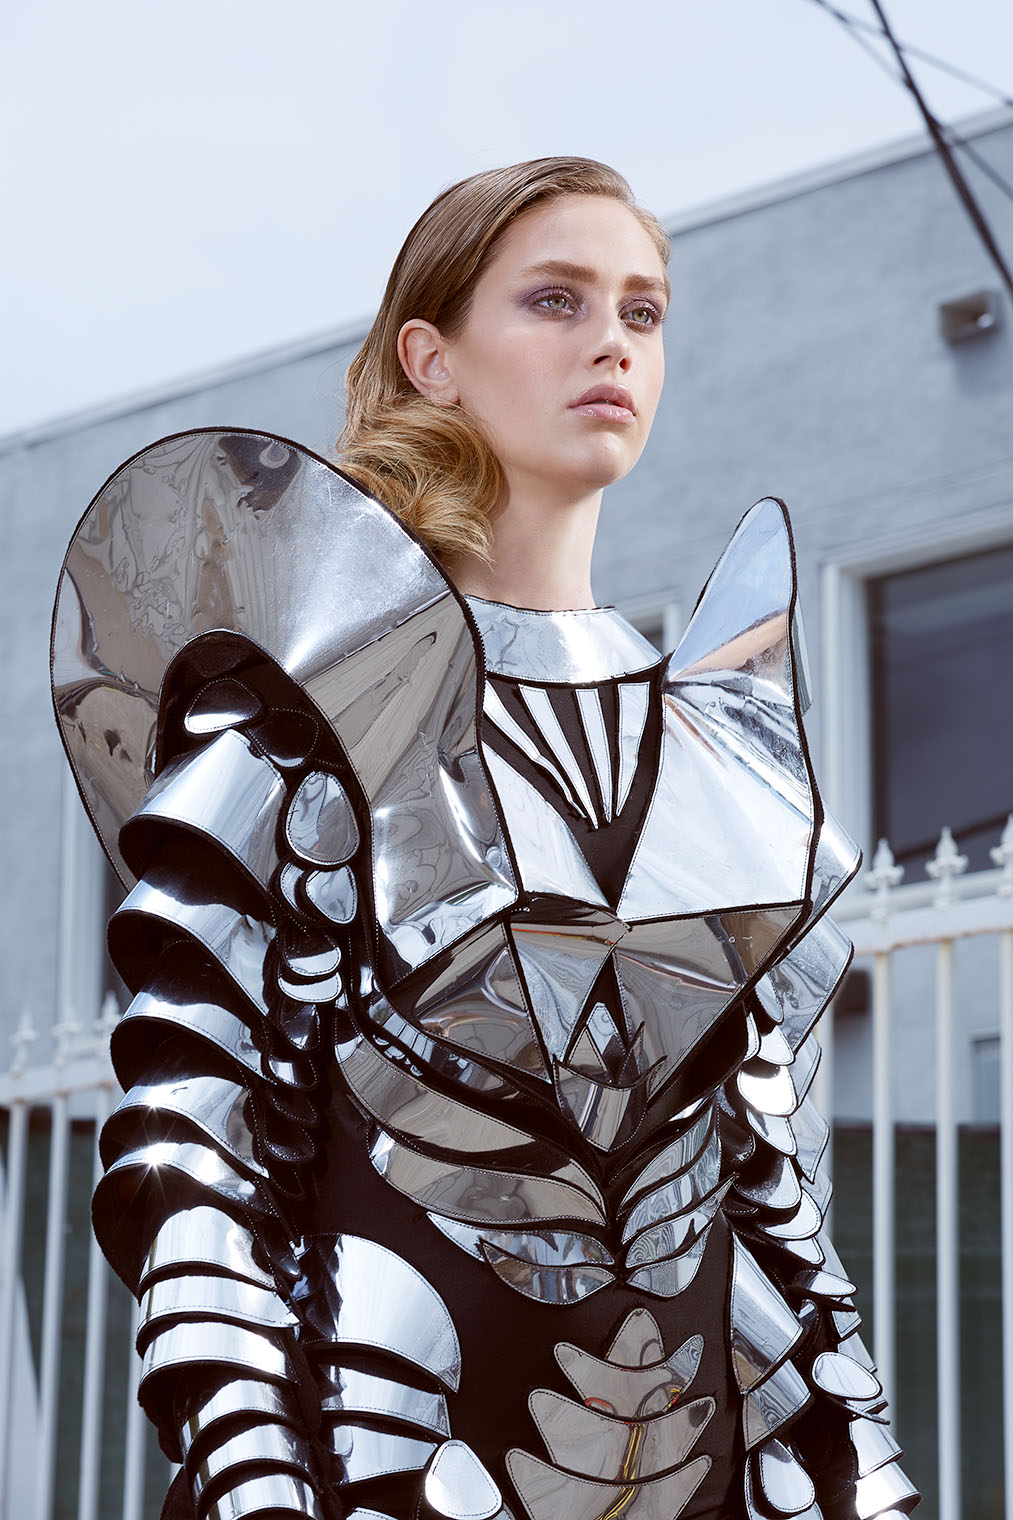 girl in silver high fashion armor in futuristic fashion shoot - best clothing photographers LA